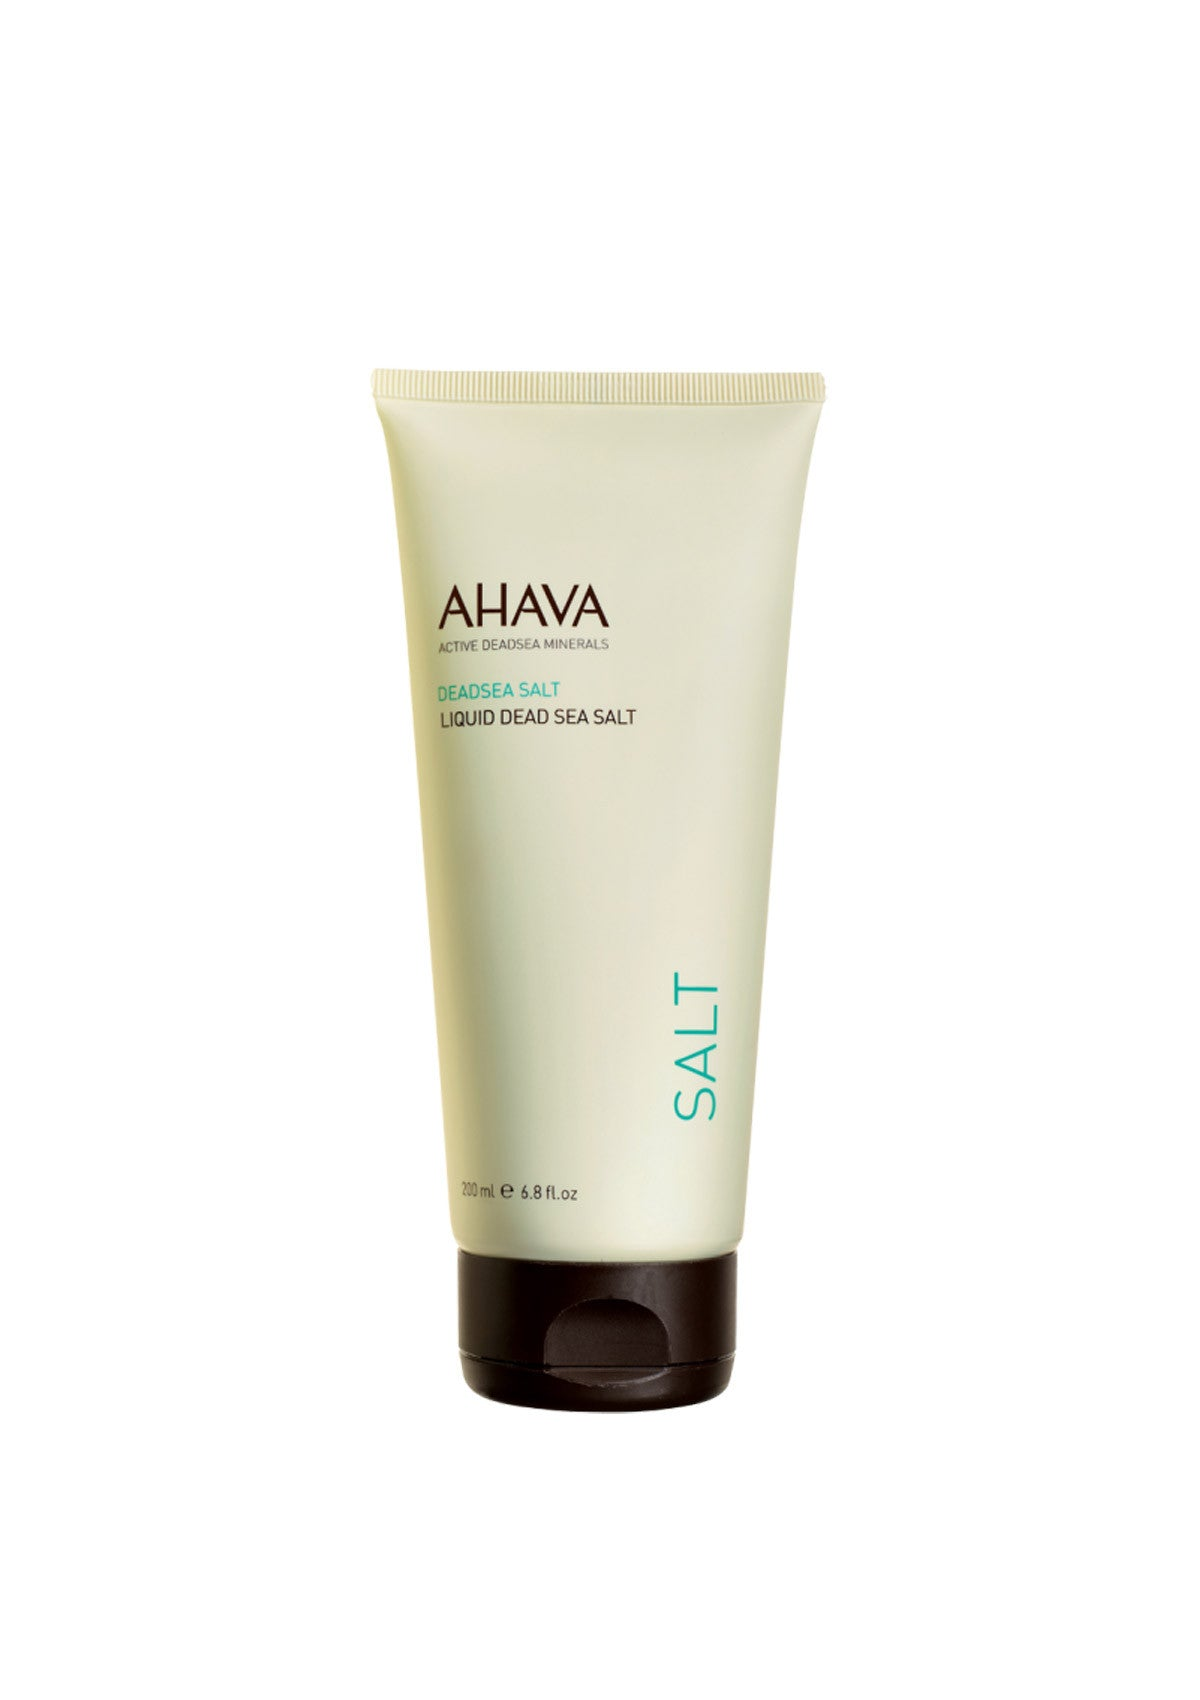 AHAVA - Liquid Dead Sea Salt - DeadSeaShop.co.uk